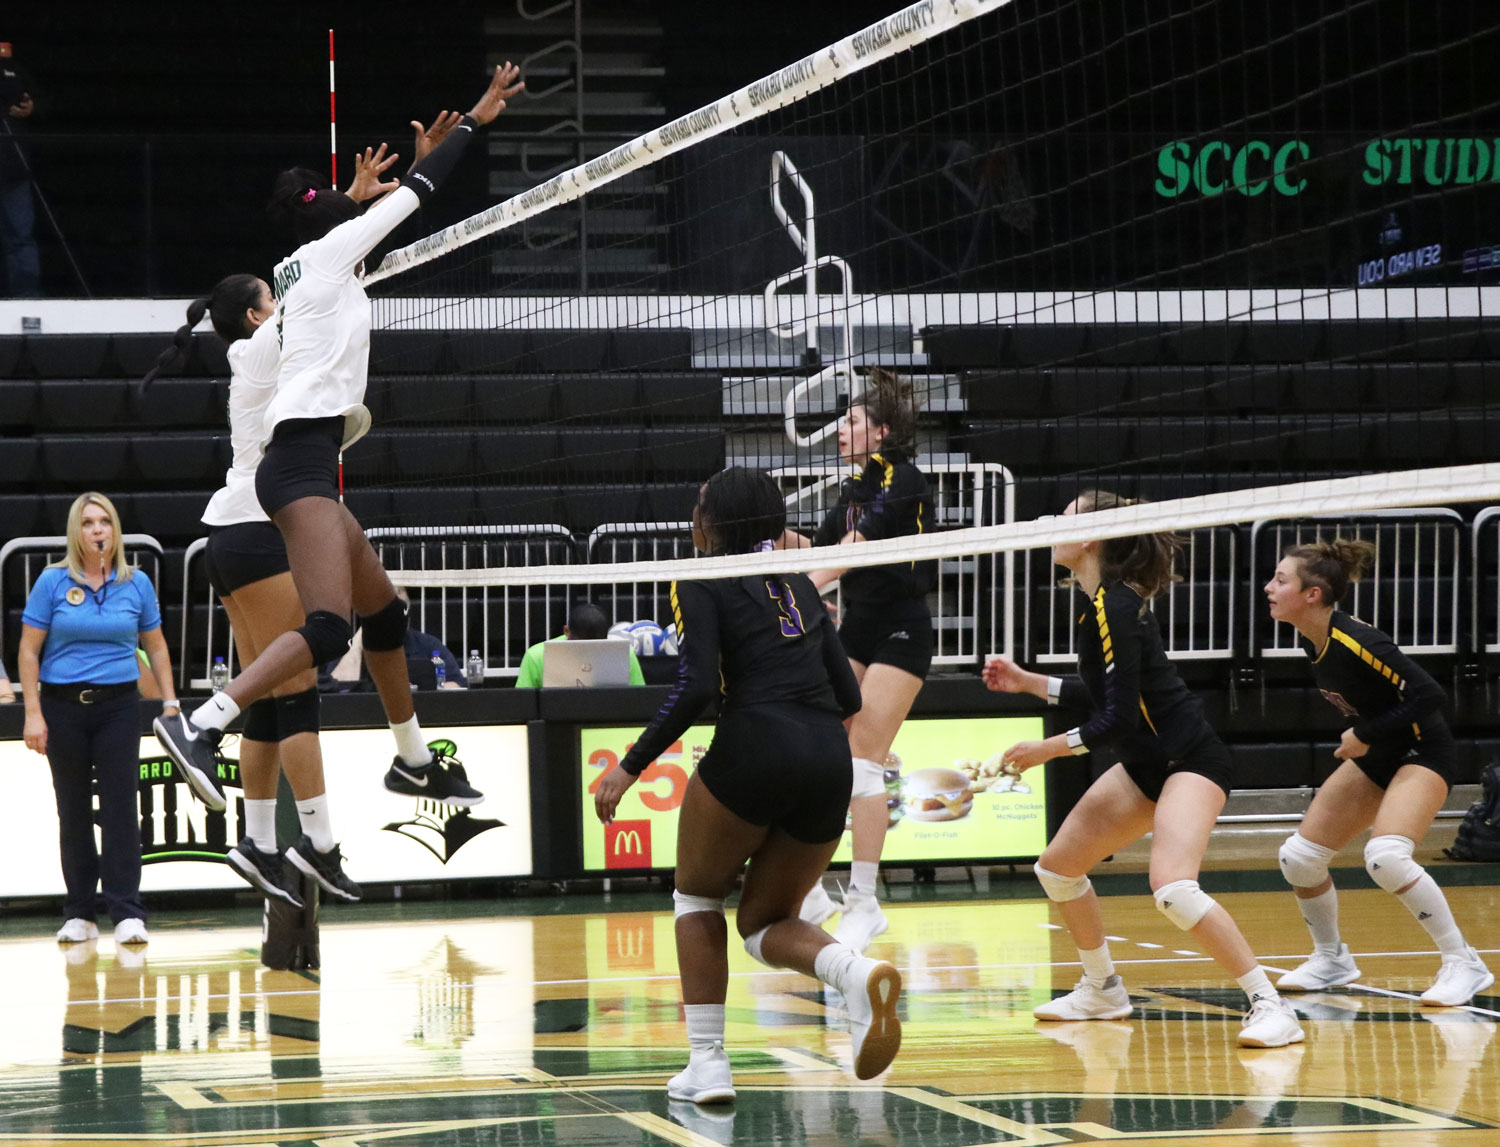 Two Lady Saints gnail a block against the Lady Conqs in Wednesday's game. Seward won in convincing fashion, 3-0.